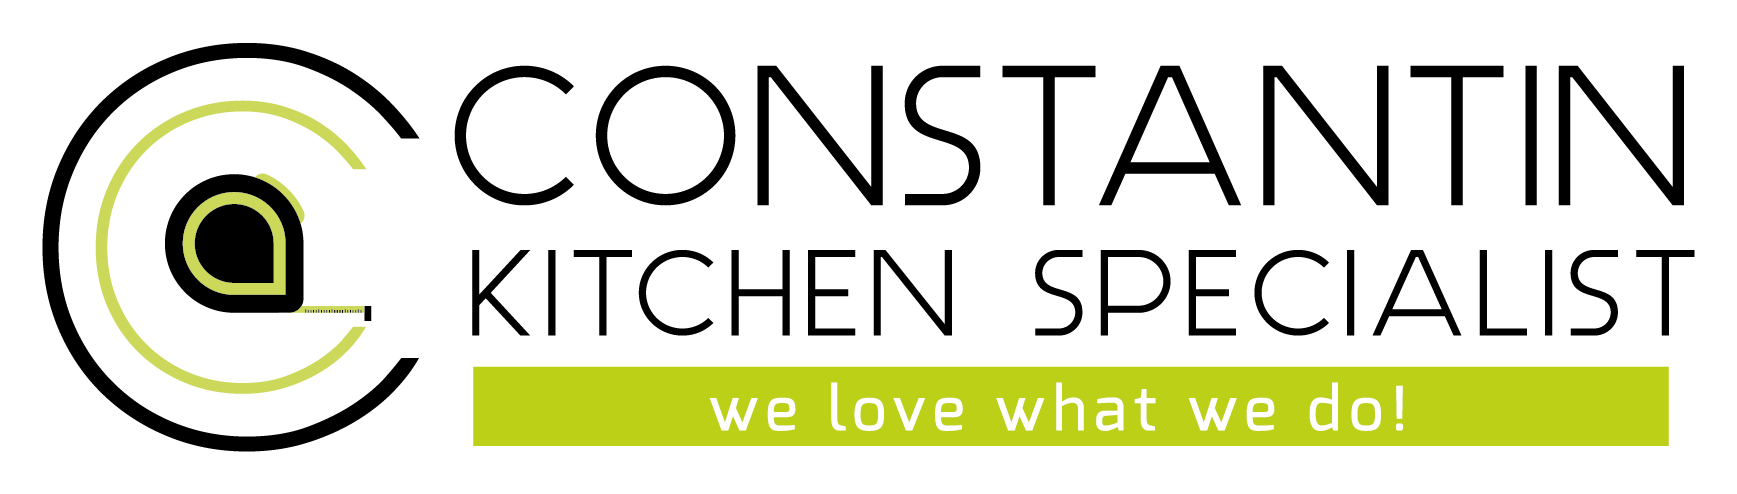 C-Constantin Kitchen Specialist Ltd